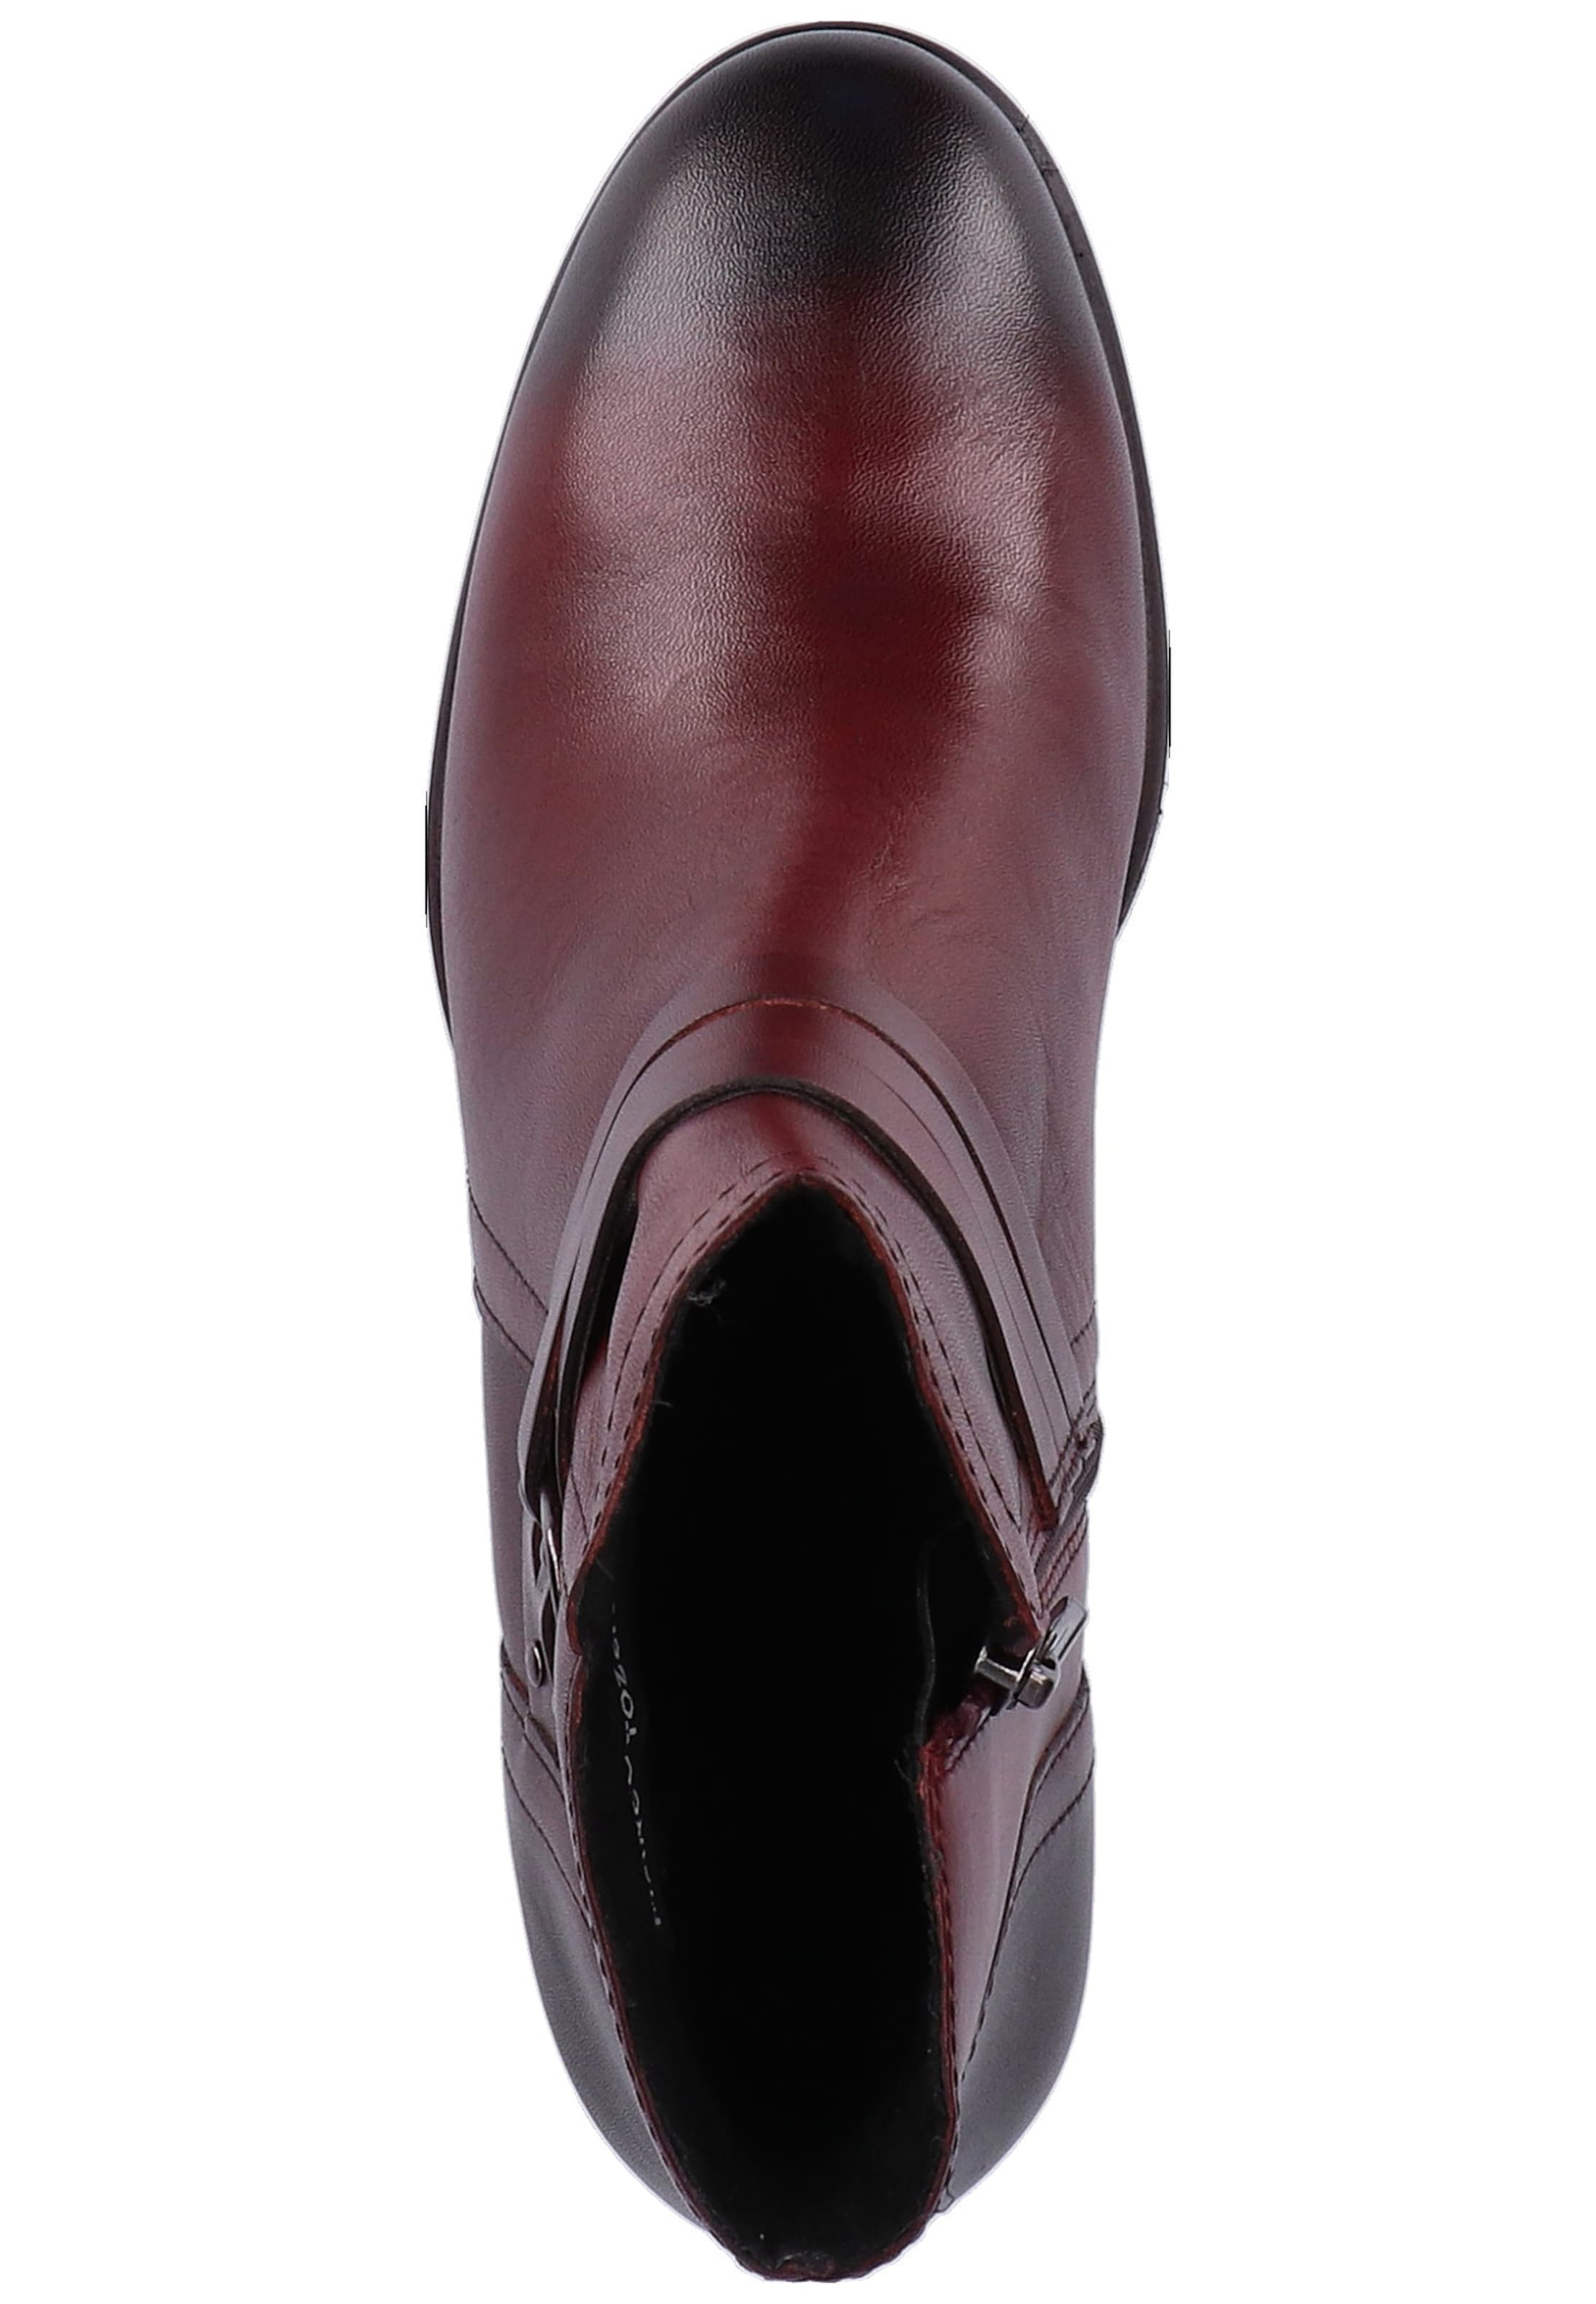 Bordeaux Marco En En Tozzi Marco Bordeaux Bottines Tozzi Bottines Jl1KTFc